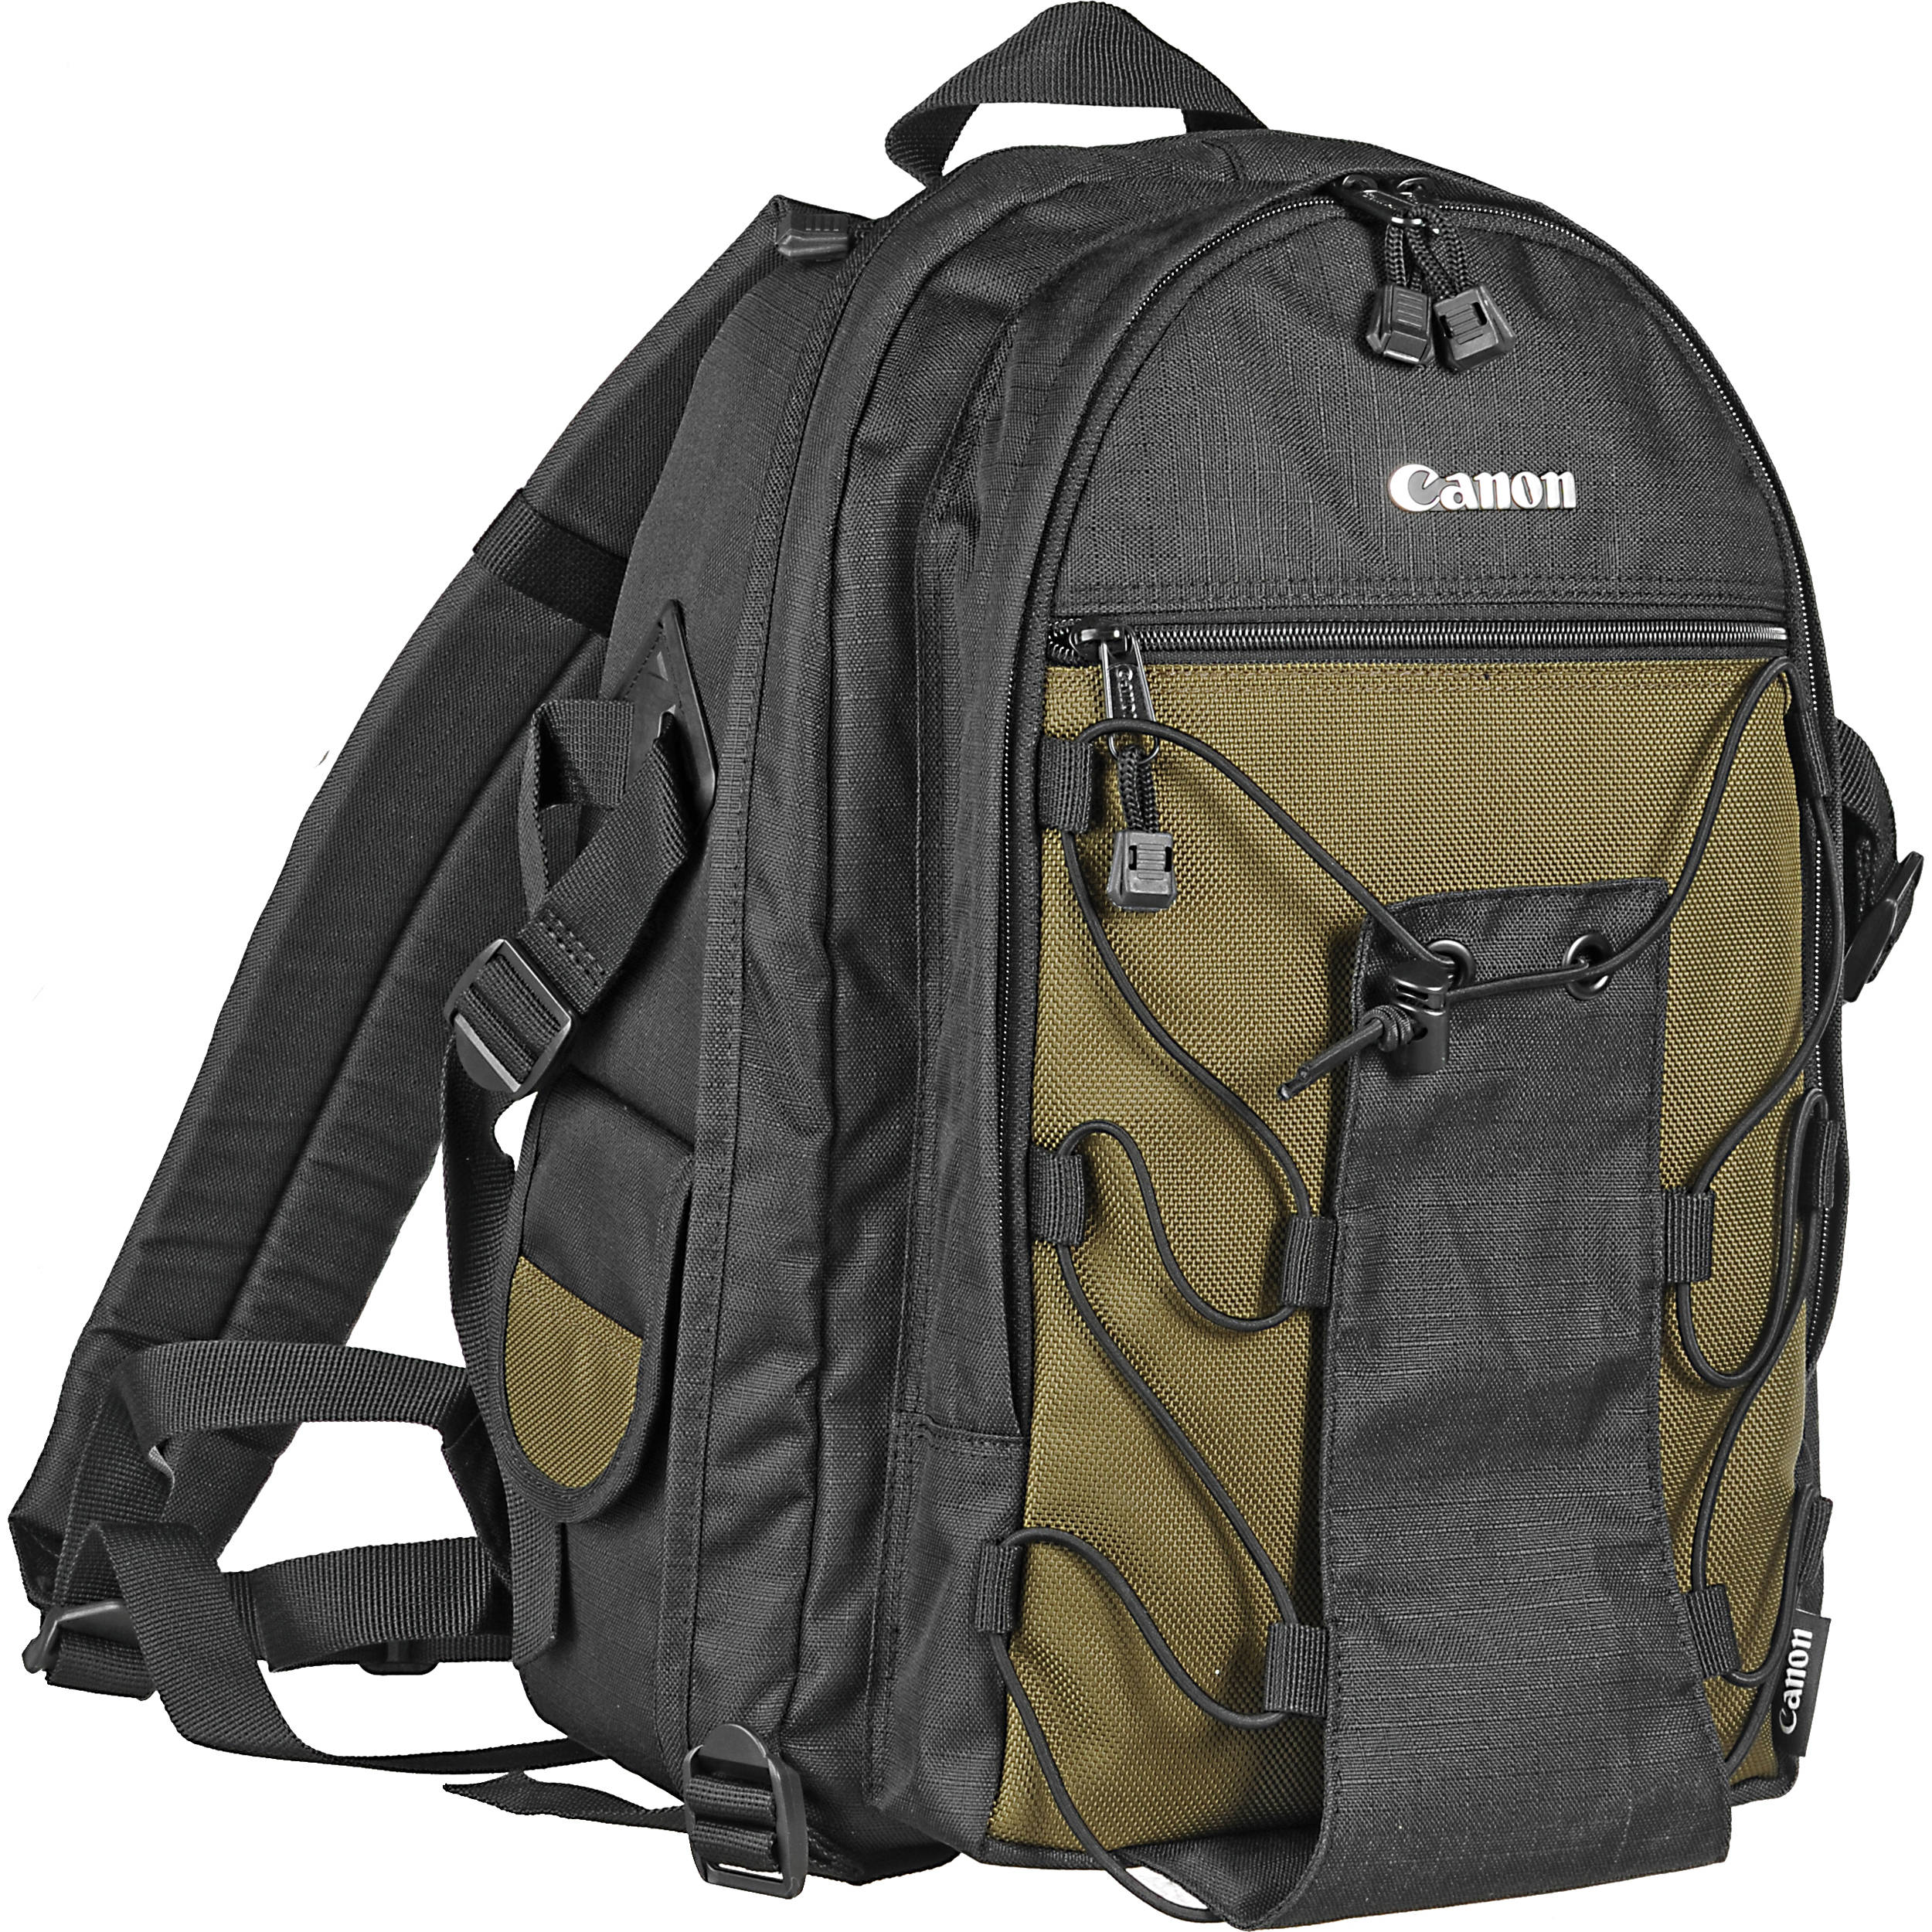 7e34d8ff456b Canon Deluxe Backpack 200 EG 6229A003 B H Photo Video